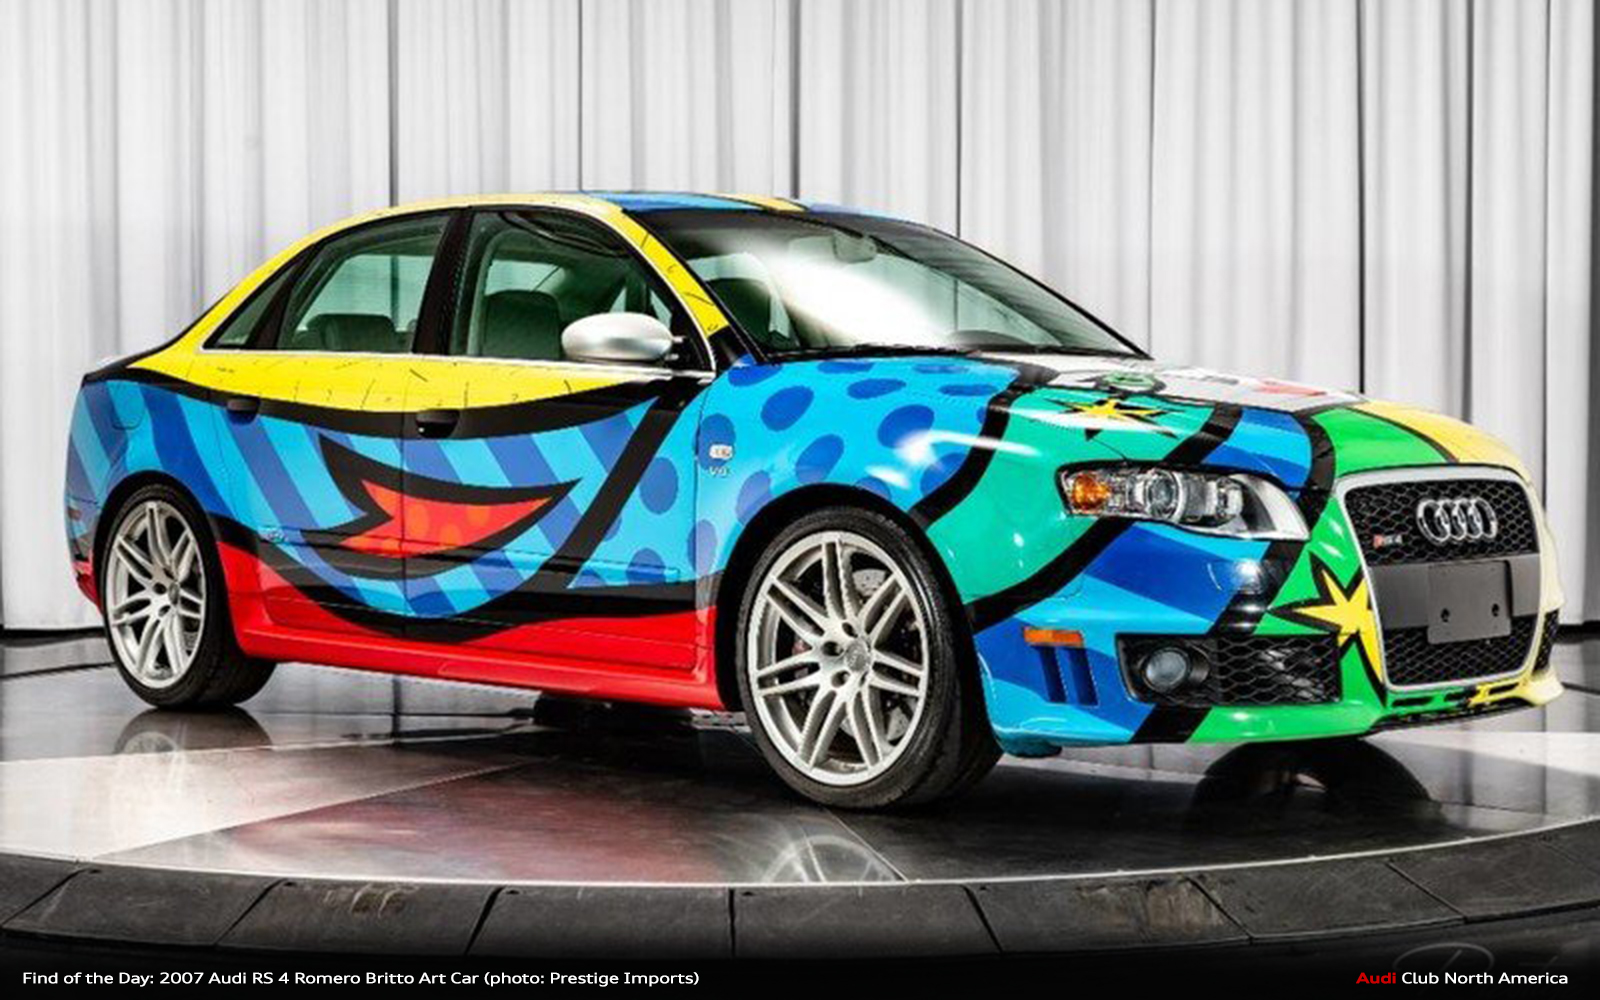 Find of the Day: 2007 Audi RS 4 Romero Britto Art Car